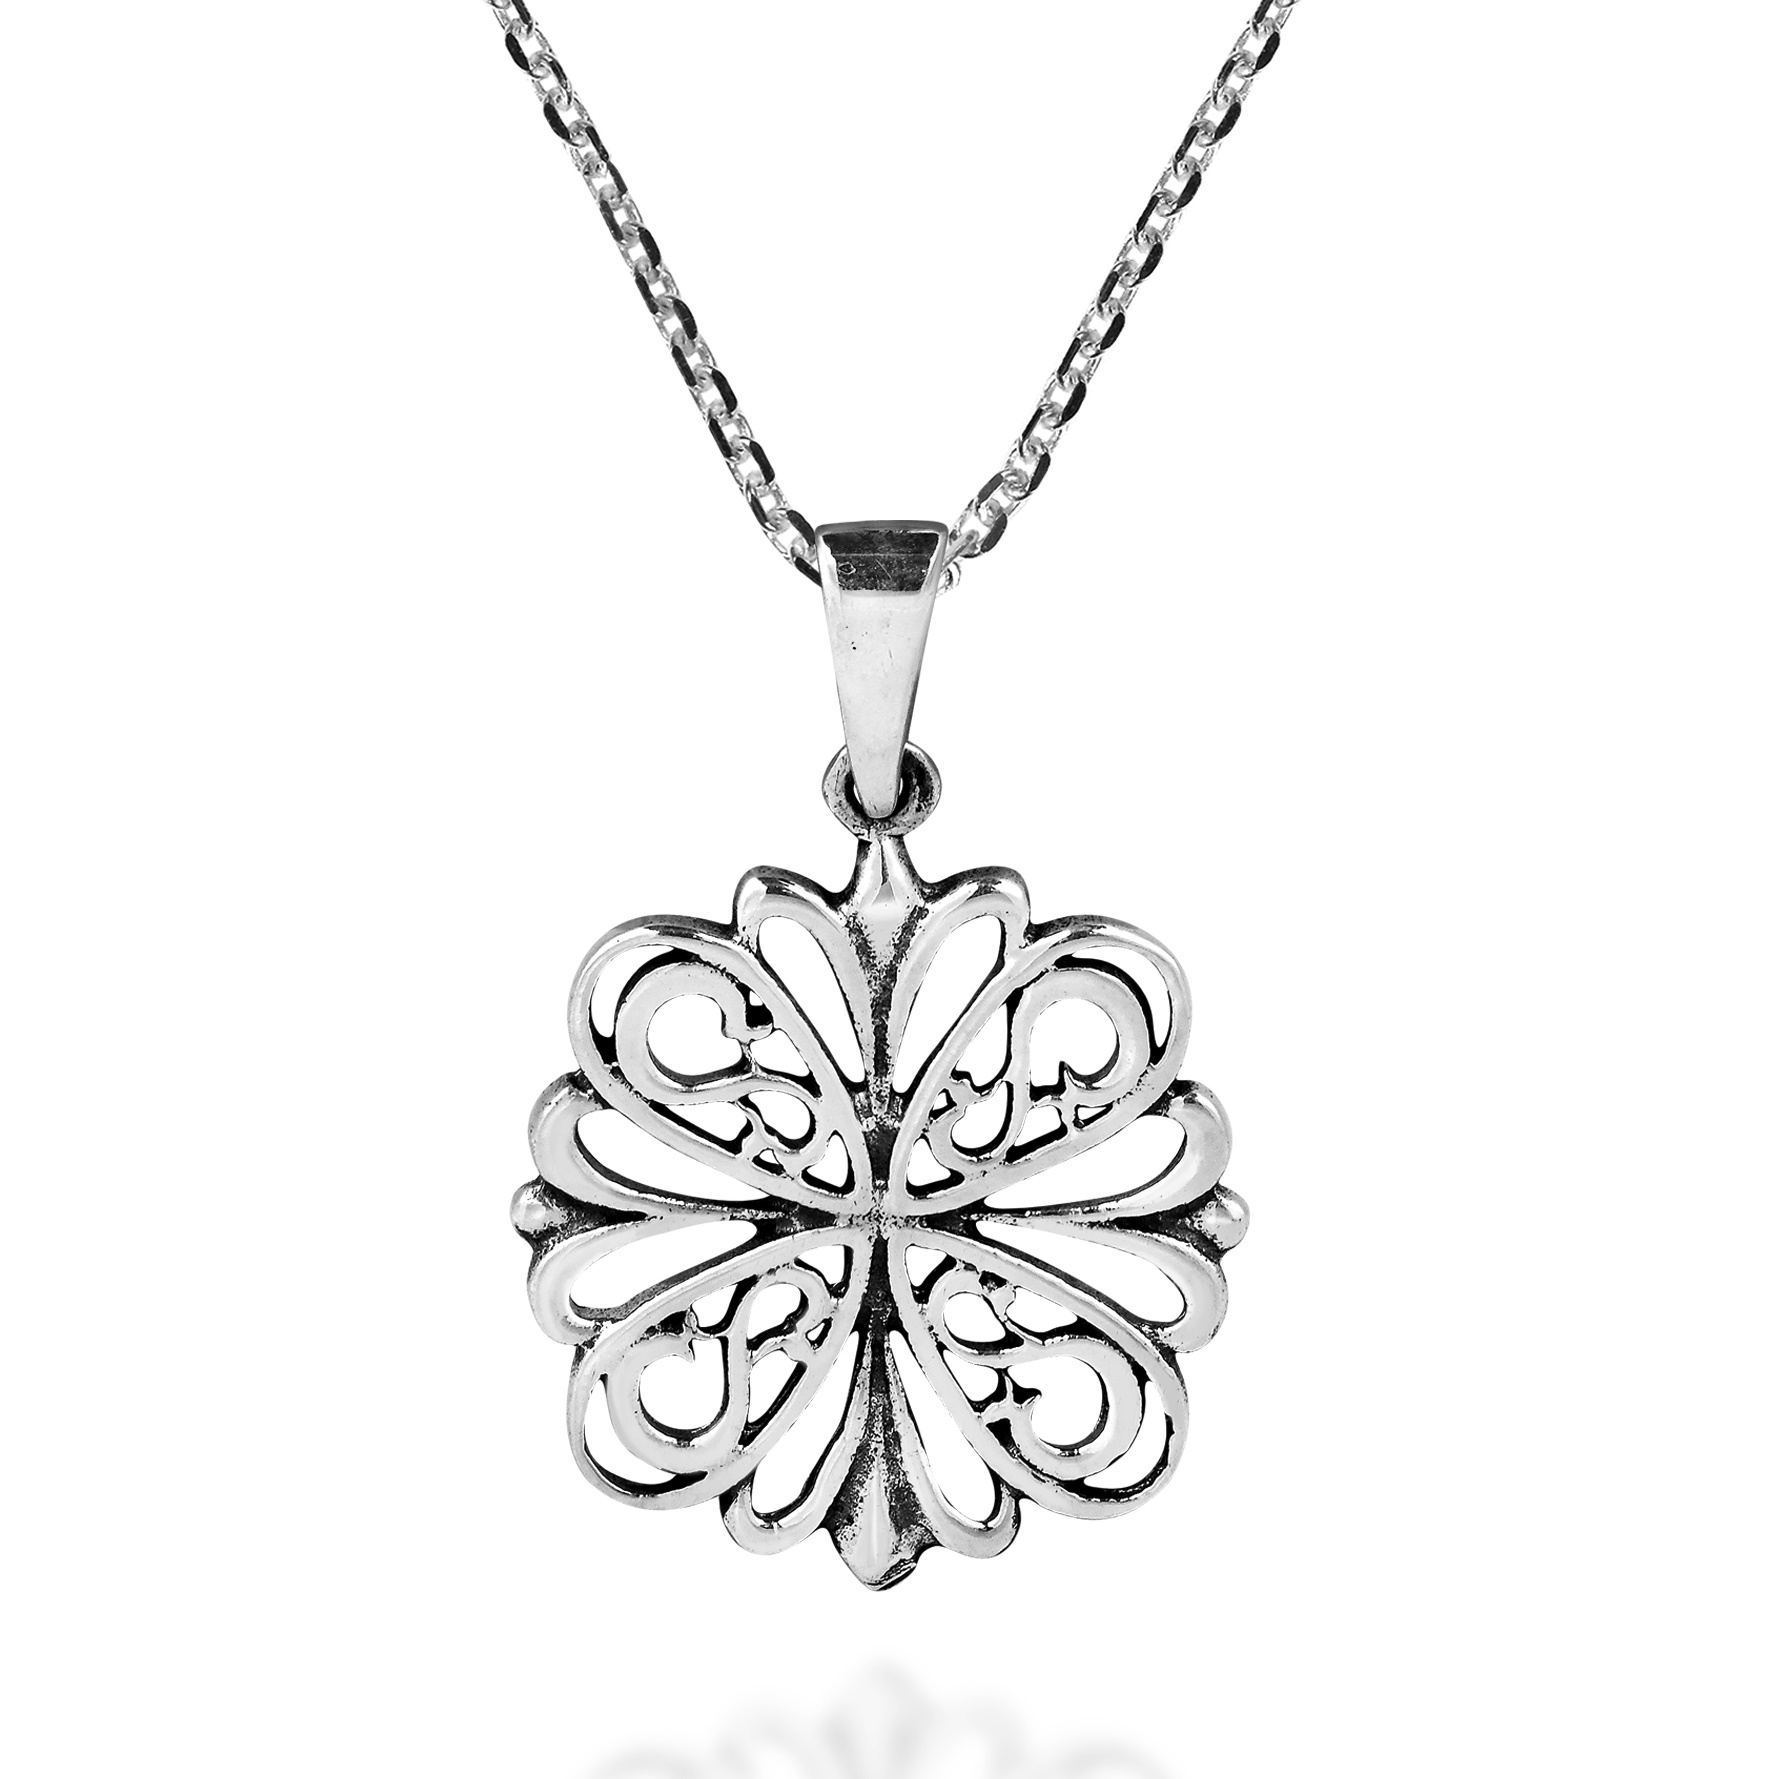 Geometric Flower of Life 925 Sterling Silver Necklace AeraVida